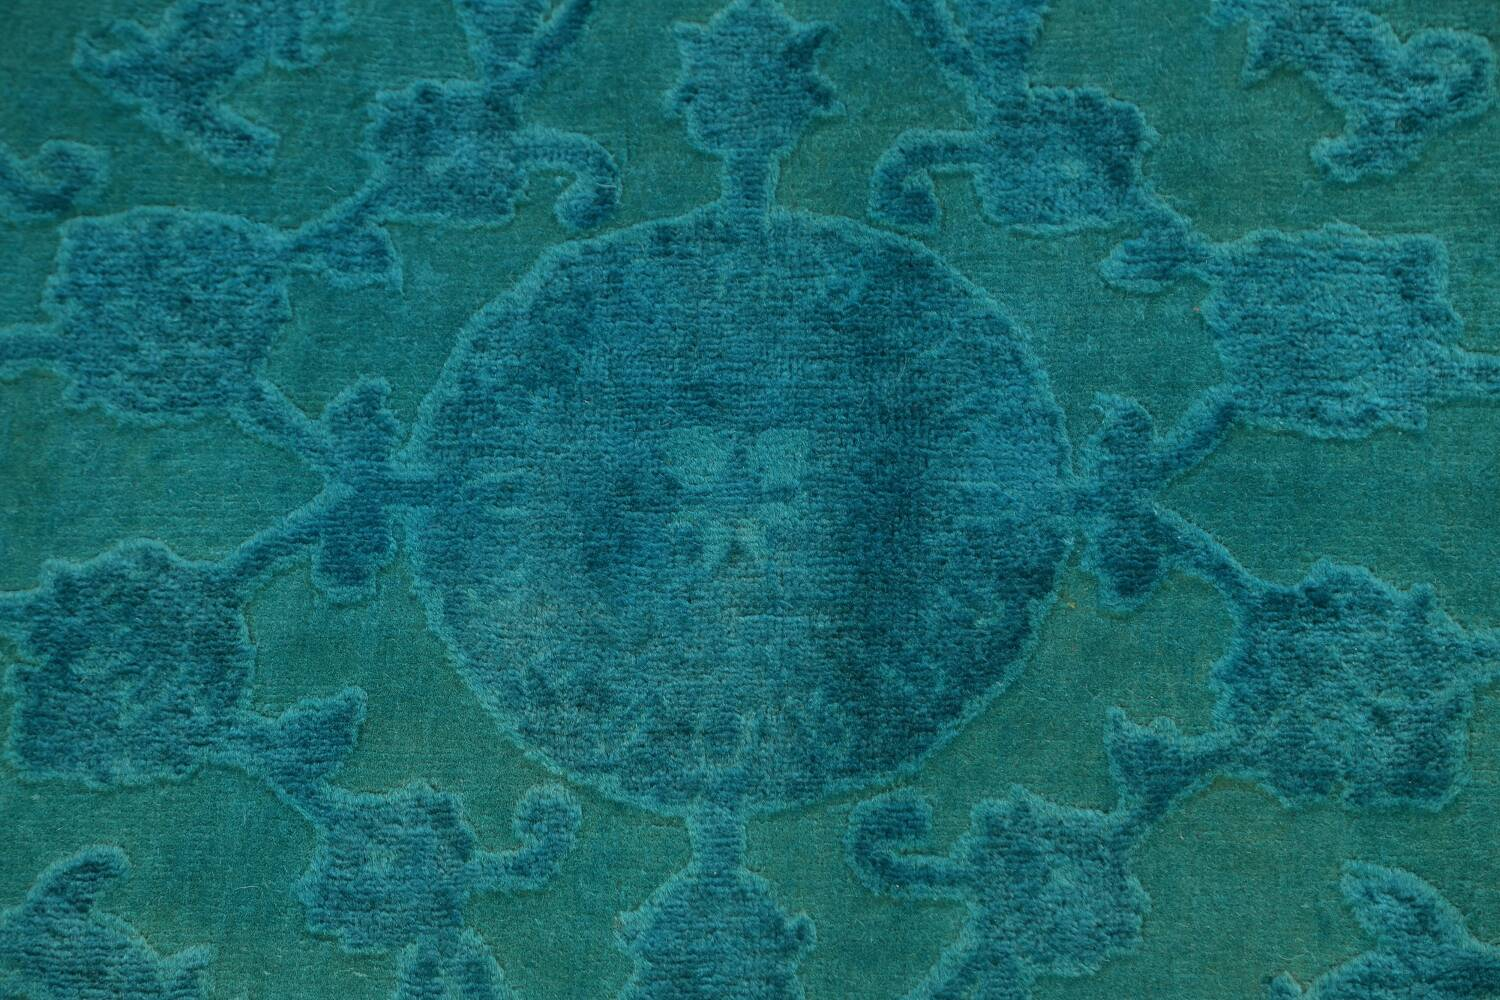 Vegetable Dye Carved Aqua Oushak Chobi Oriental Area Rug 6x9 image 8